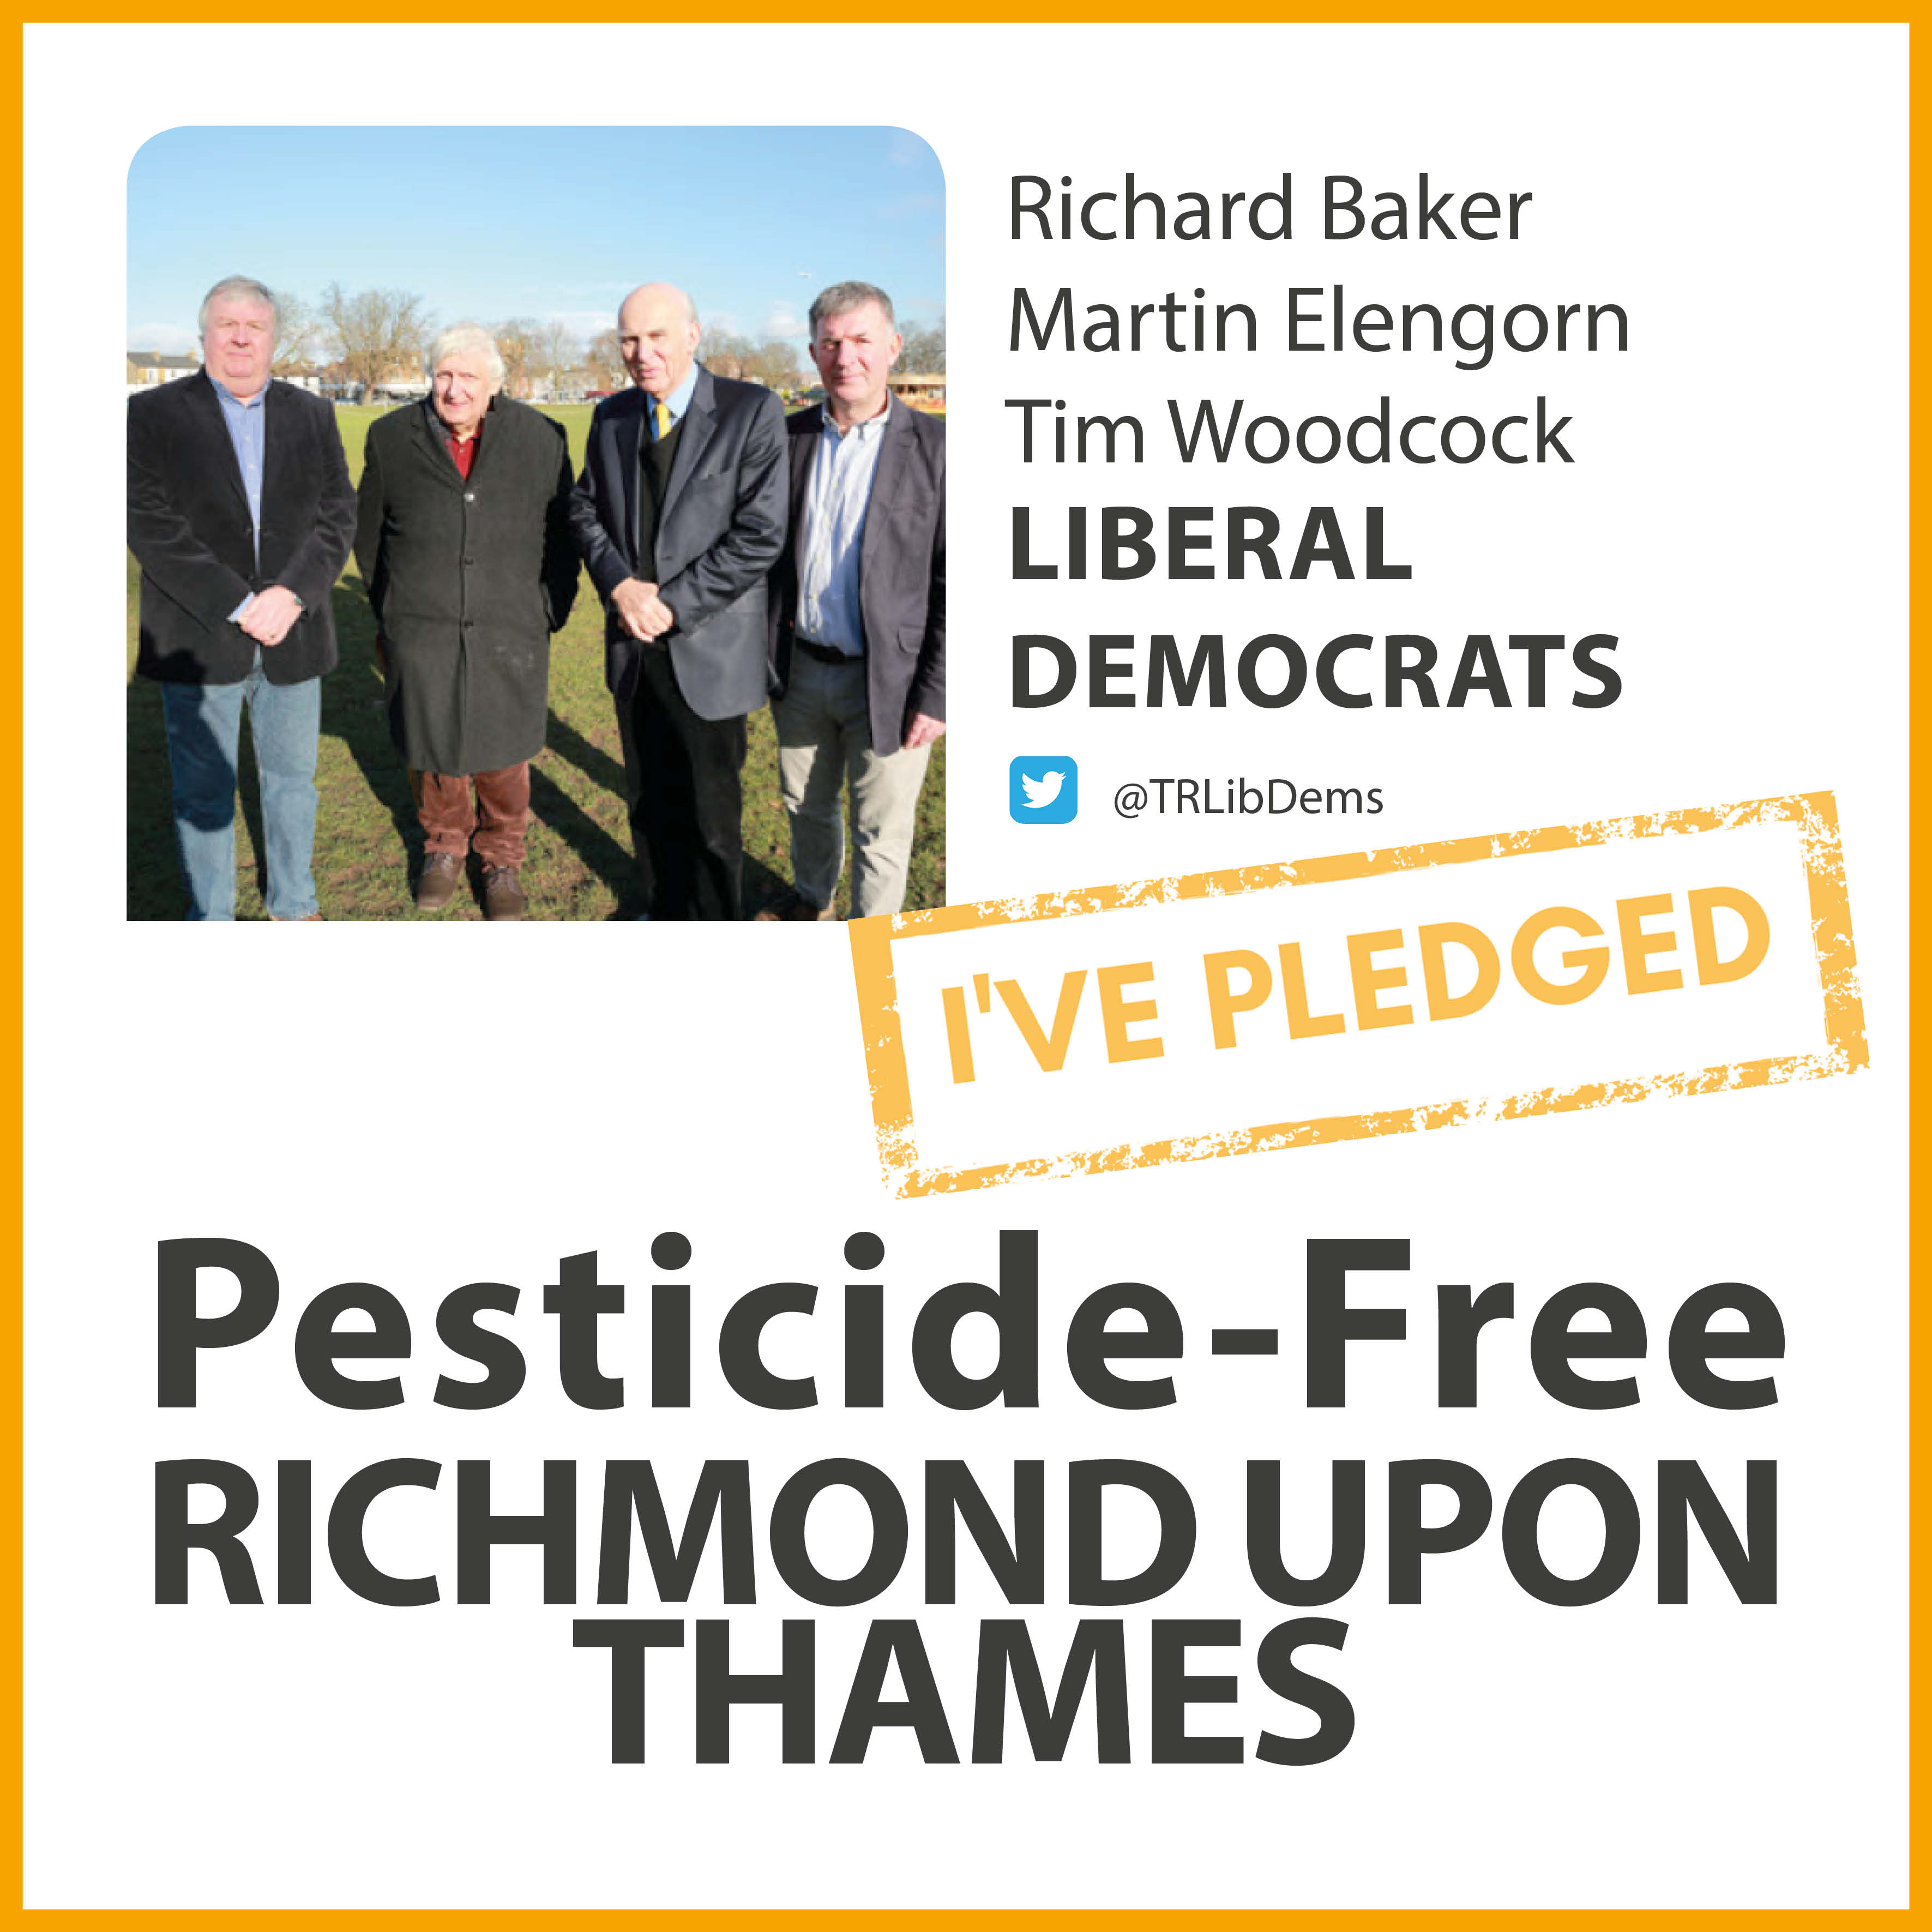 Teddington Lib Dems have taken the pesticide-free pledge